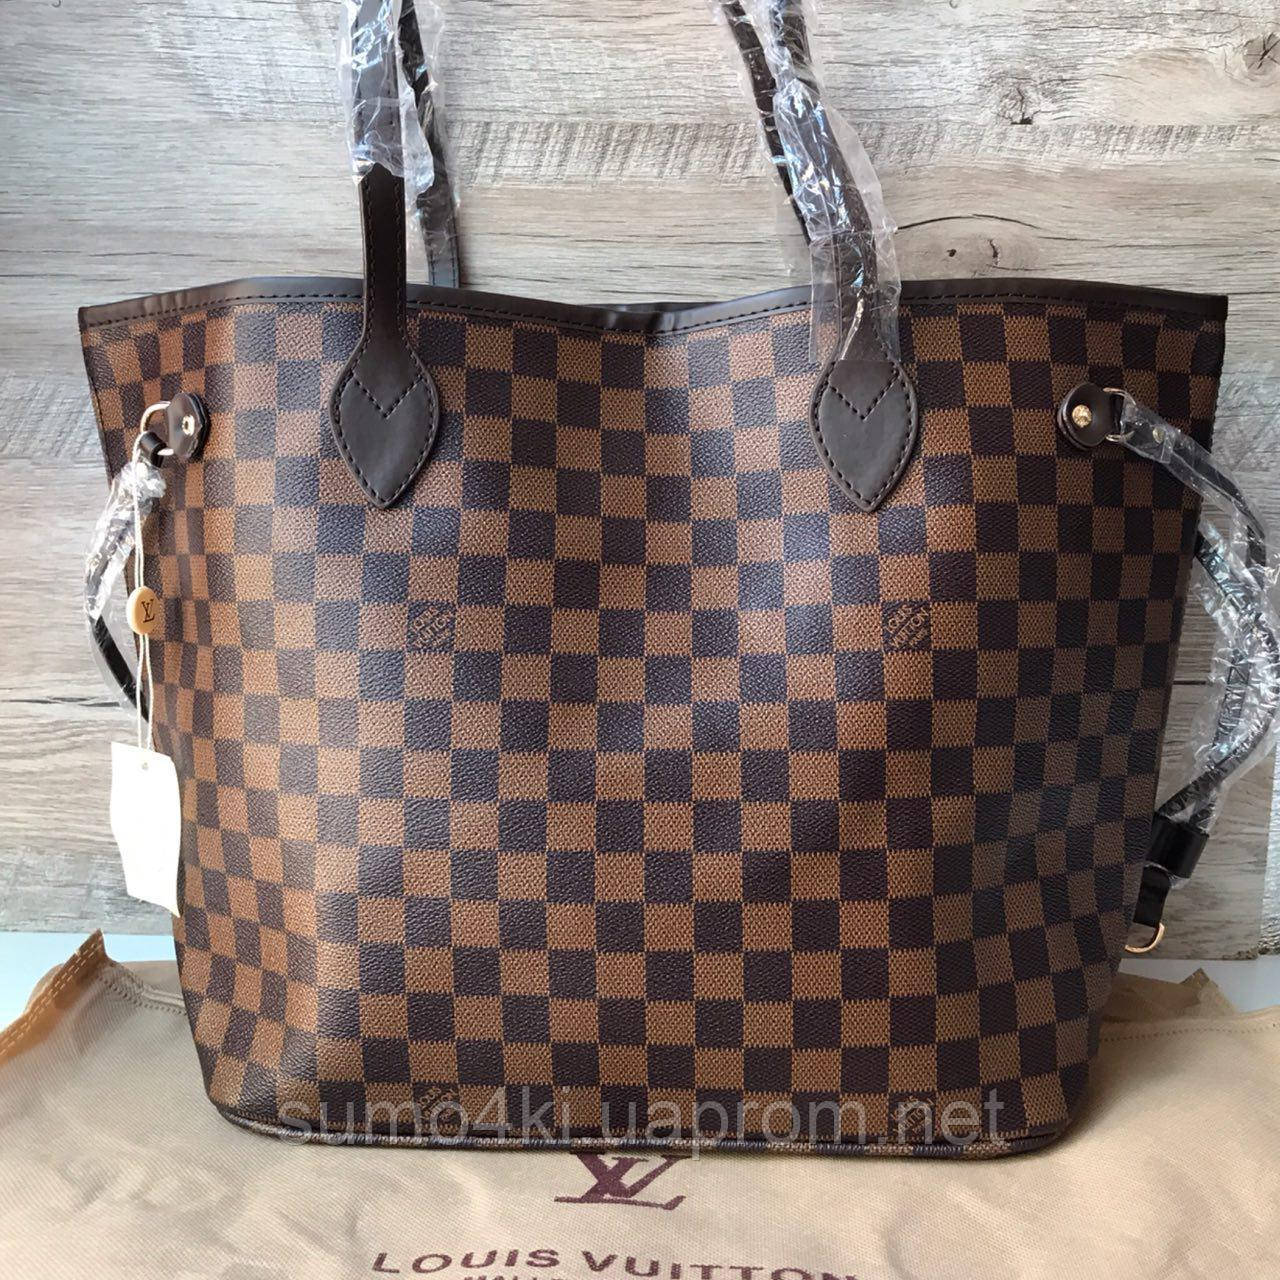 d4b727ac6f3e Женская сумка Louis Vuitton neverfull Луи Виттон неверфул -  Интернет-магазин «Галерея Сумок»